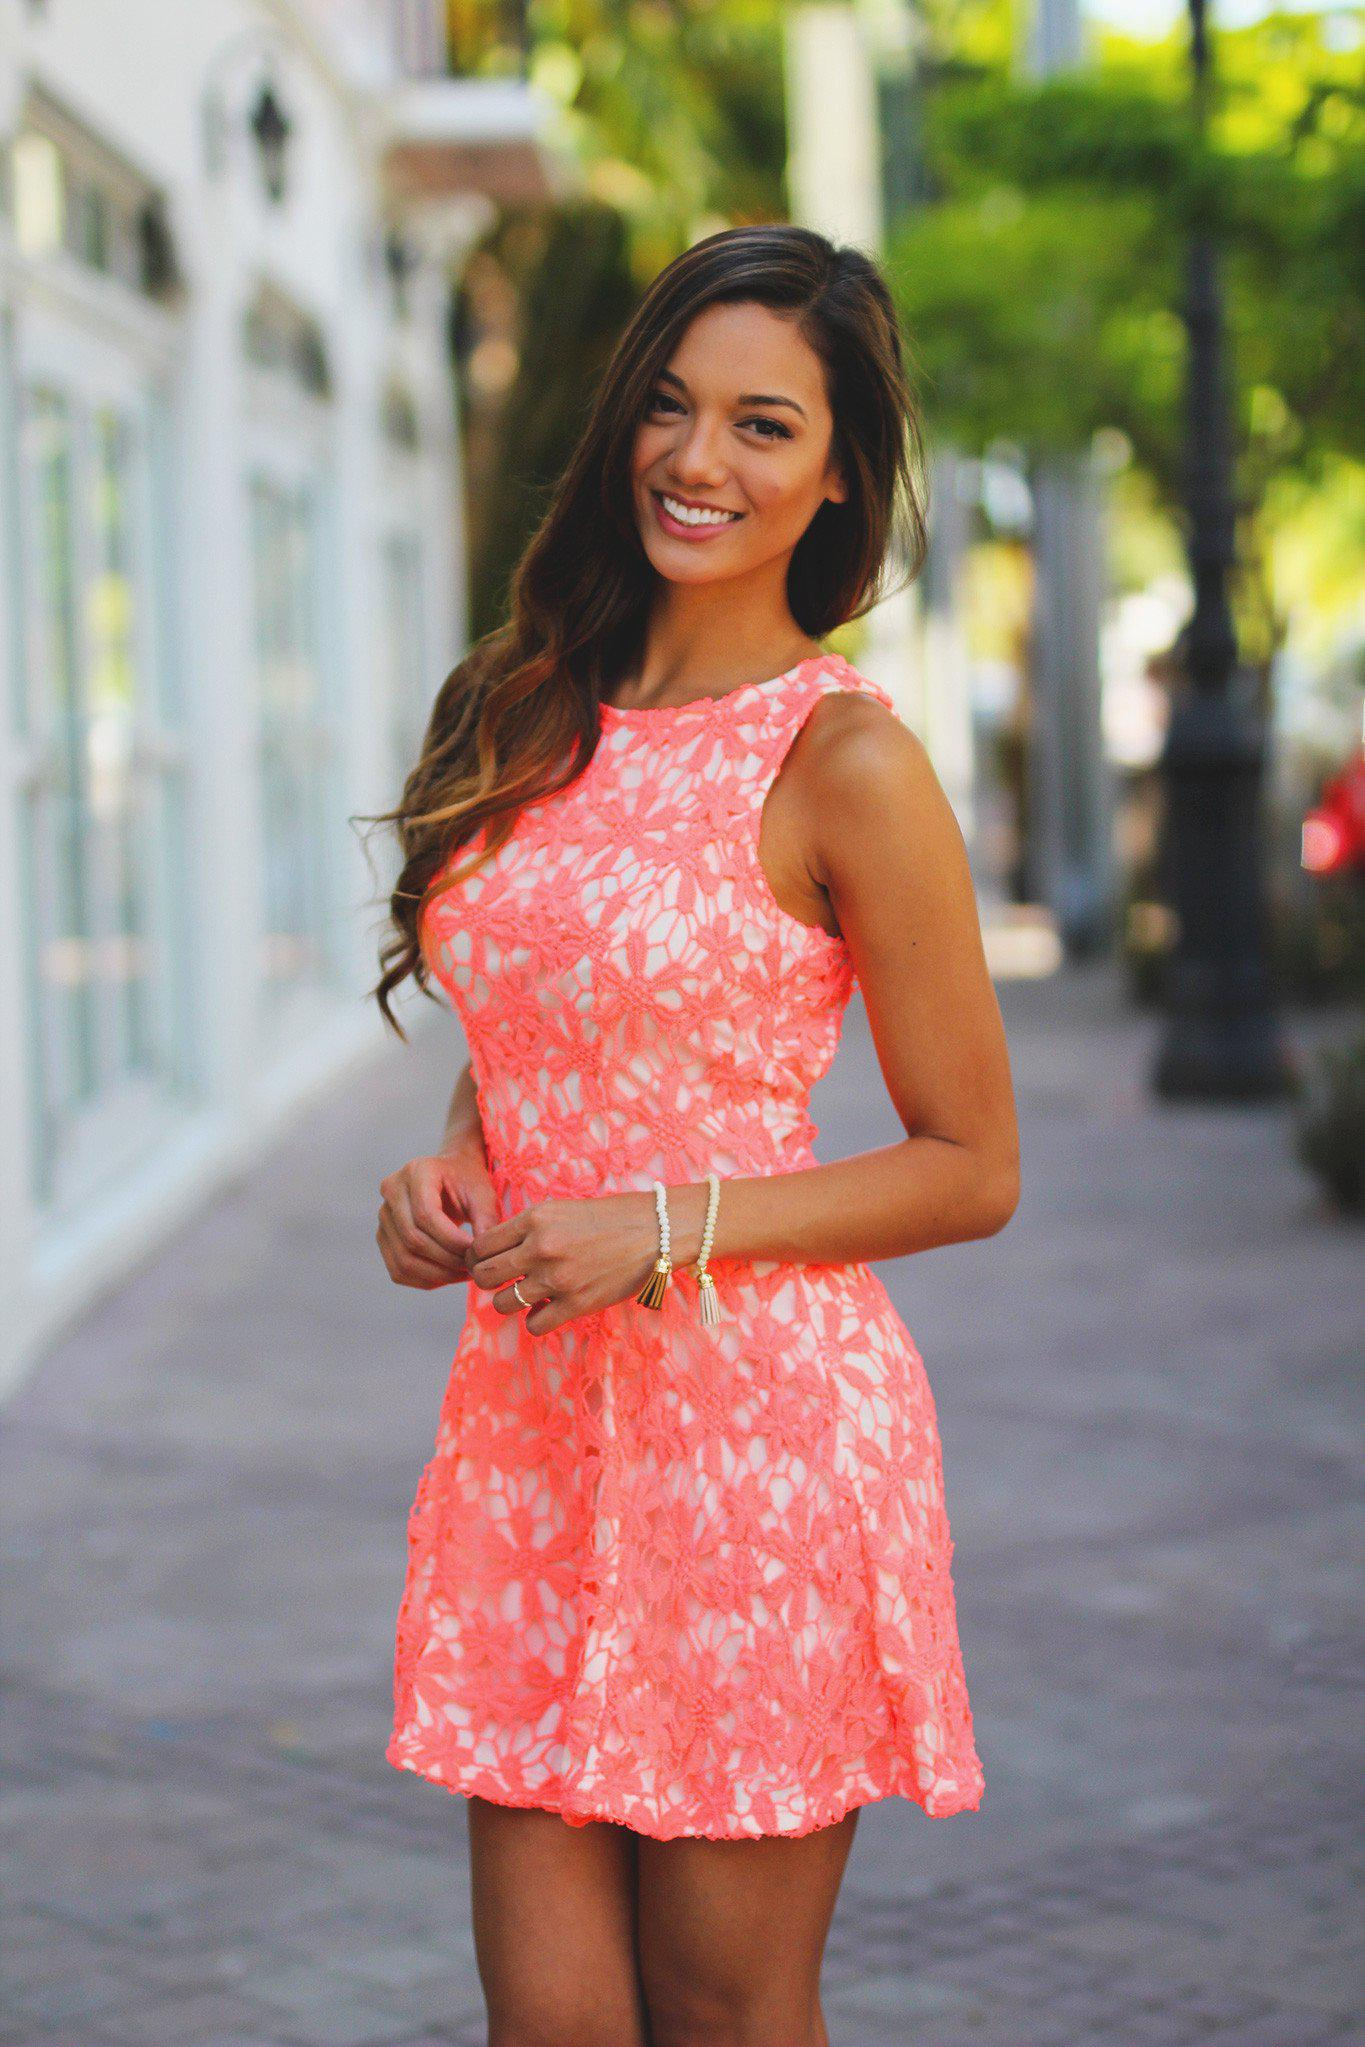 Neon Coral Crochet Dress with Tie Back